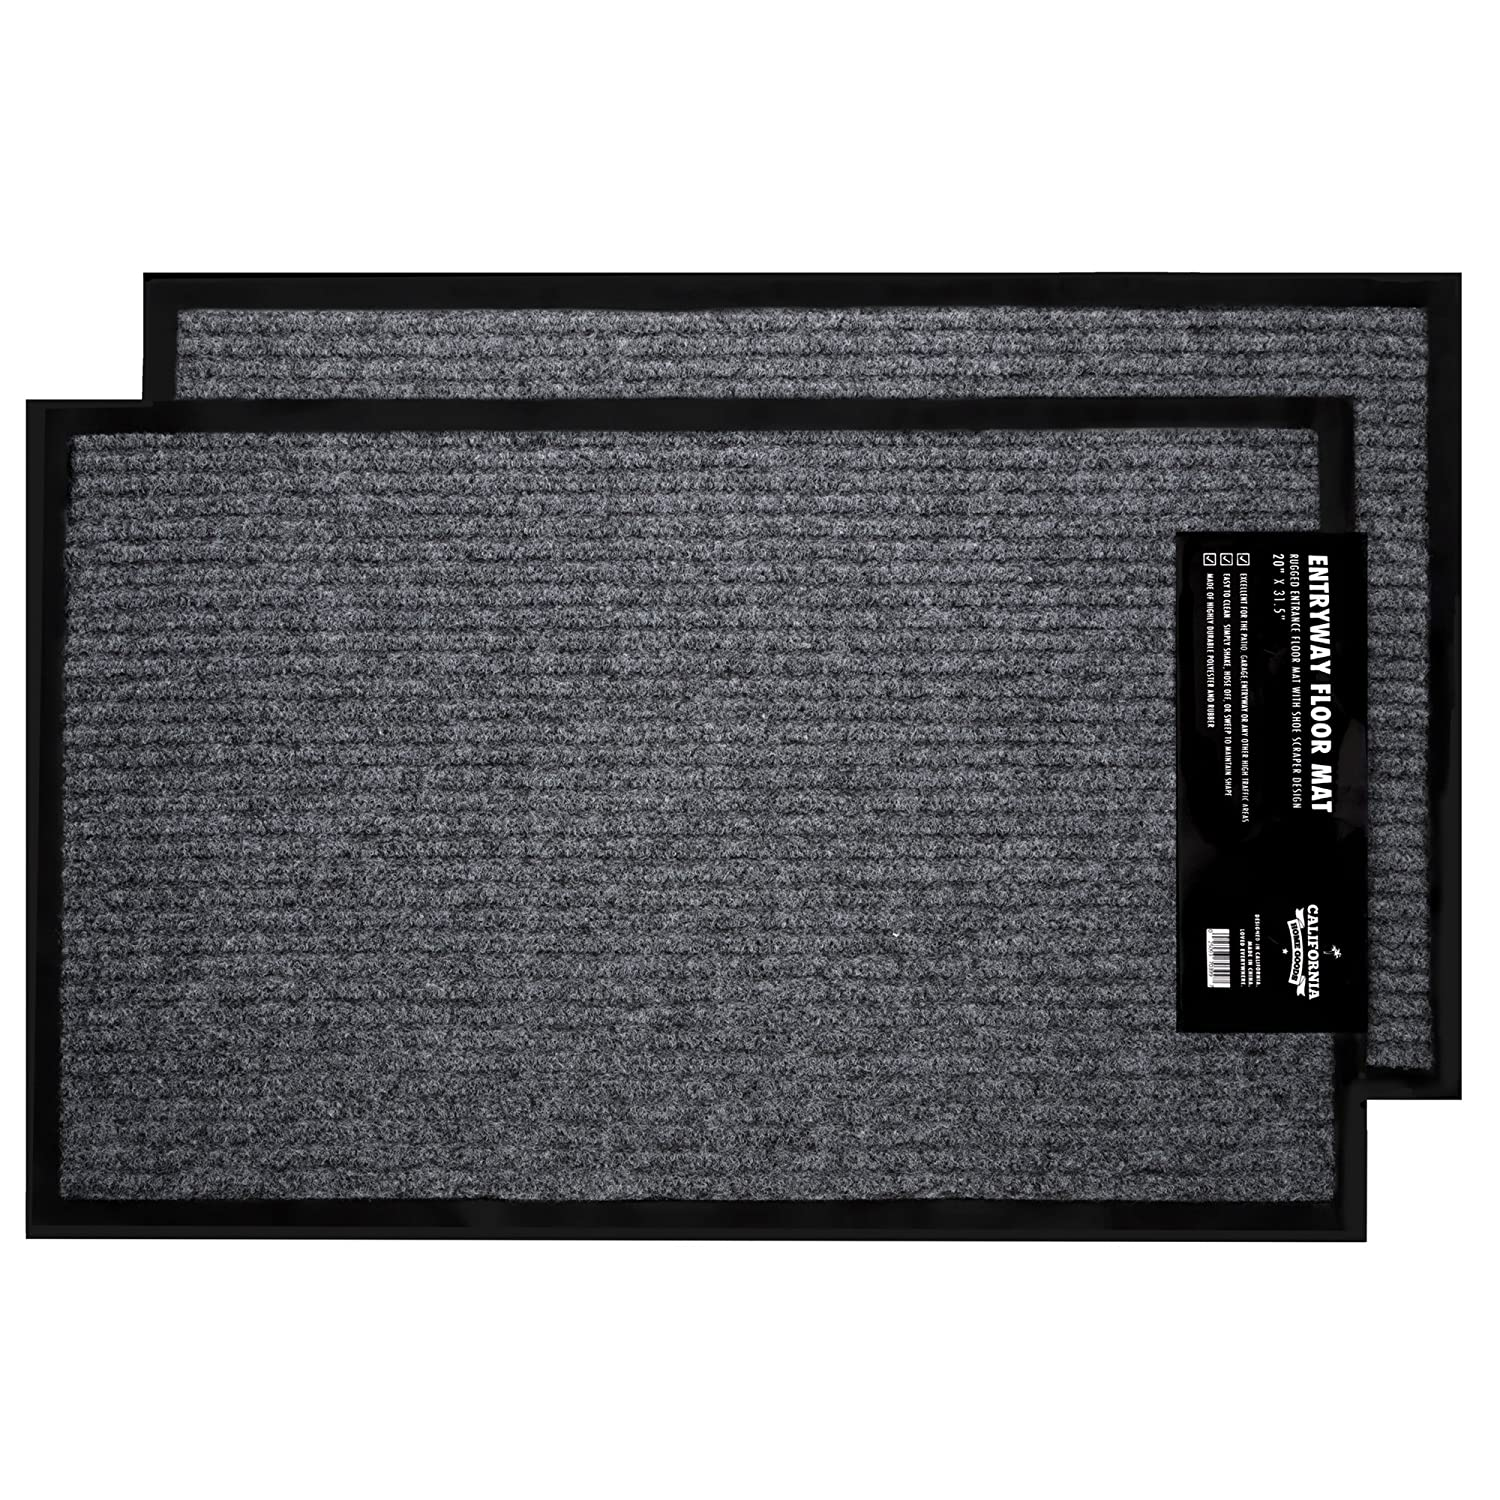 Indoor Outdoor Floor Mats 2-Pa...